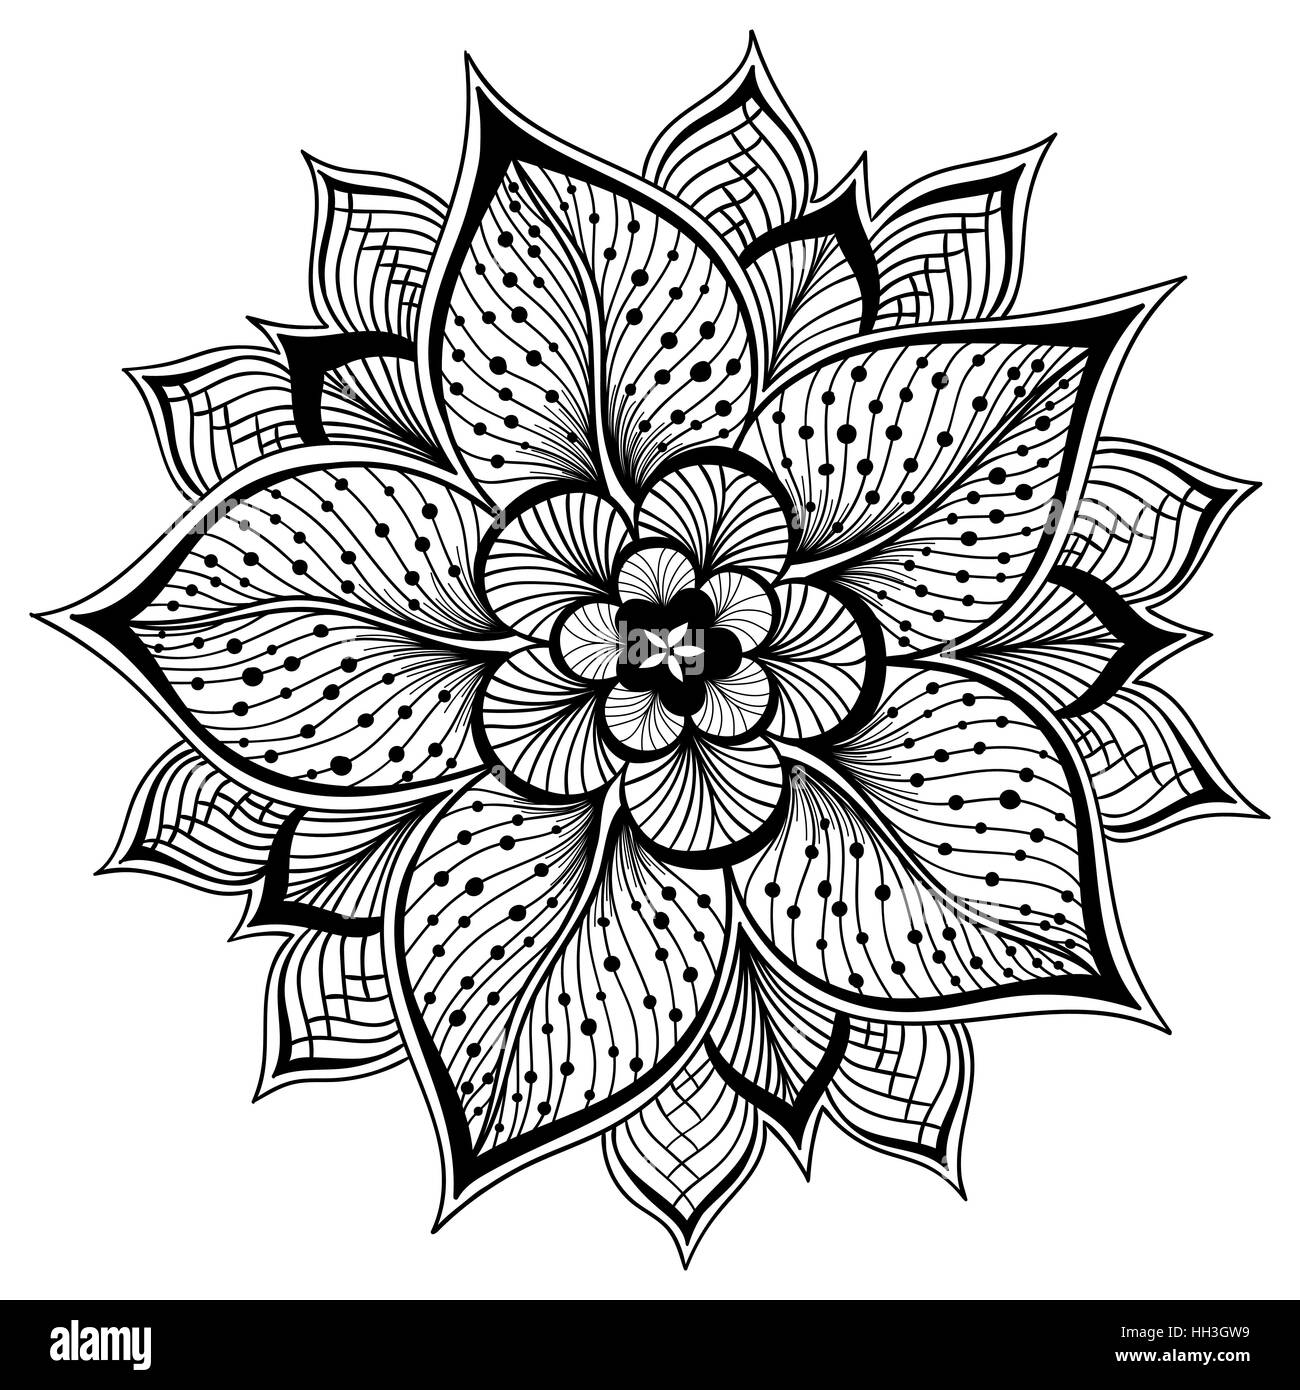 Vector Illustration Of Outline Mandala For Coloring Book Decorative Round Ornament Anti Stress Therapy Pattern Weave Design Element Yoga Logo Med